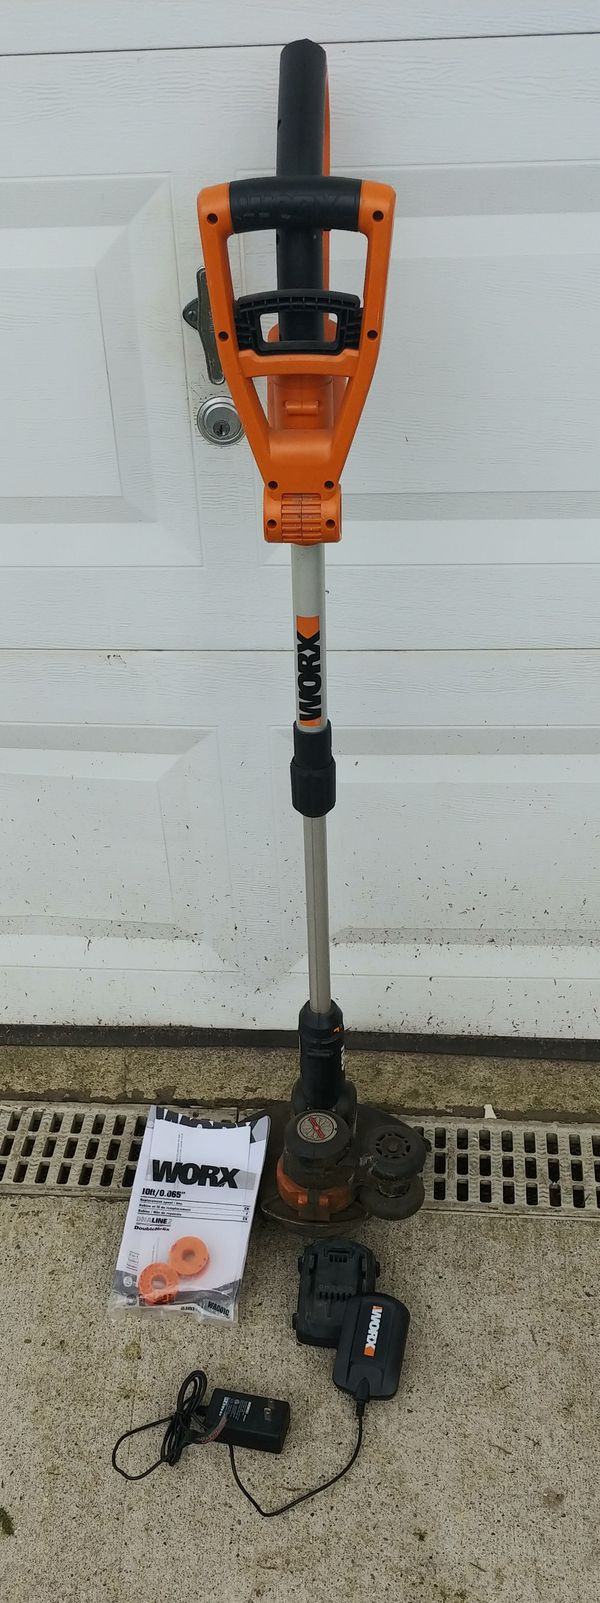 The WORX 18 volt weed trimmer / edger